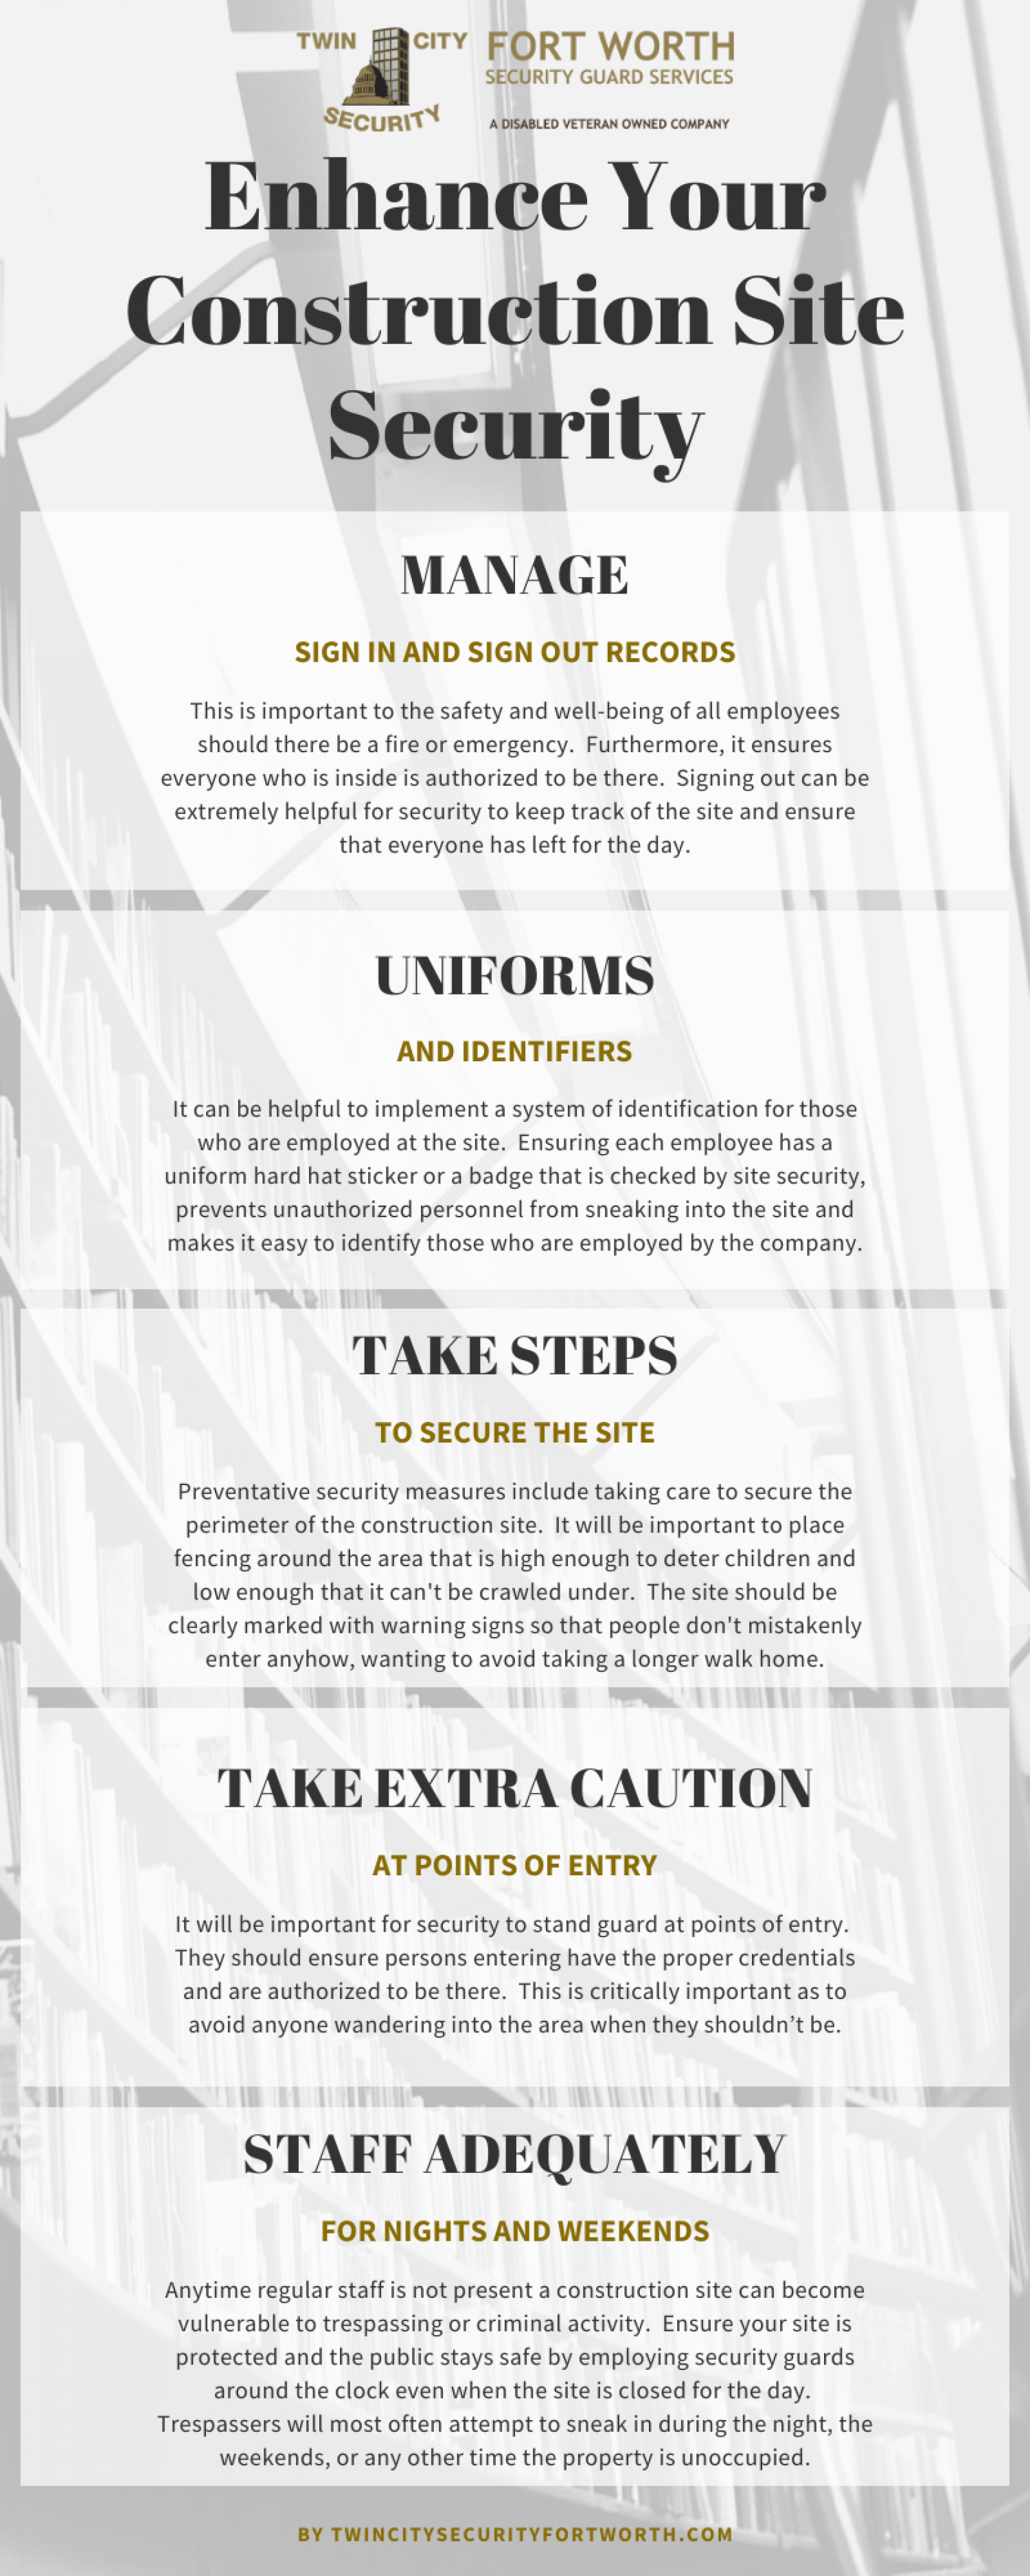 The Best Tips to Enhance Construction Site Security Infographic Infographic